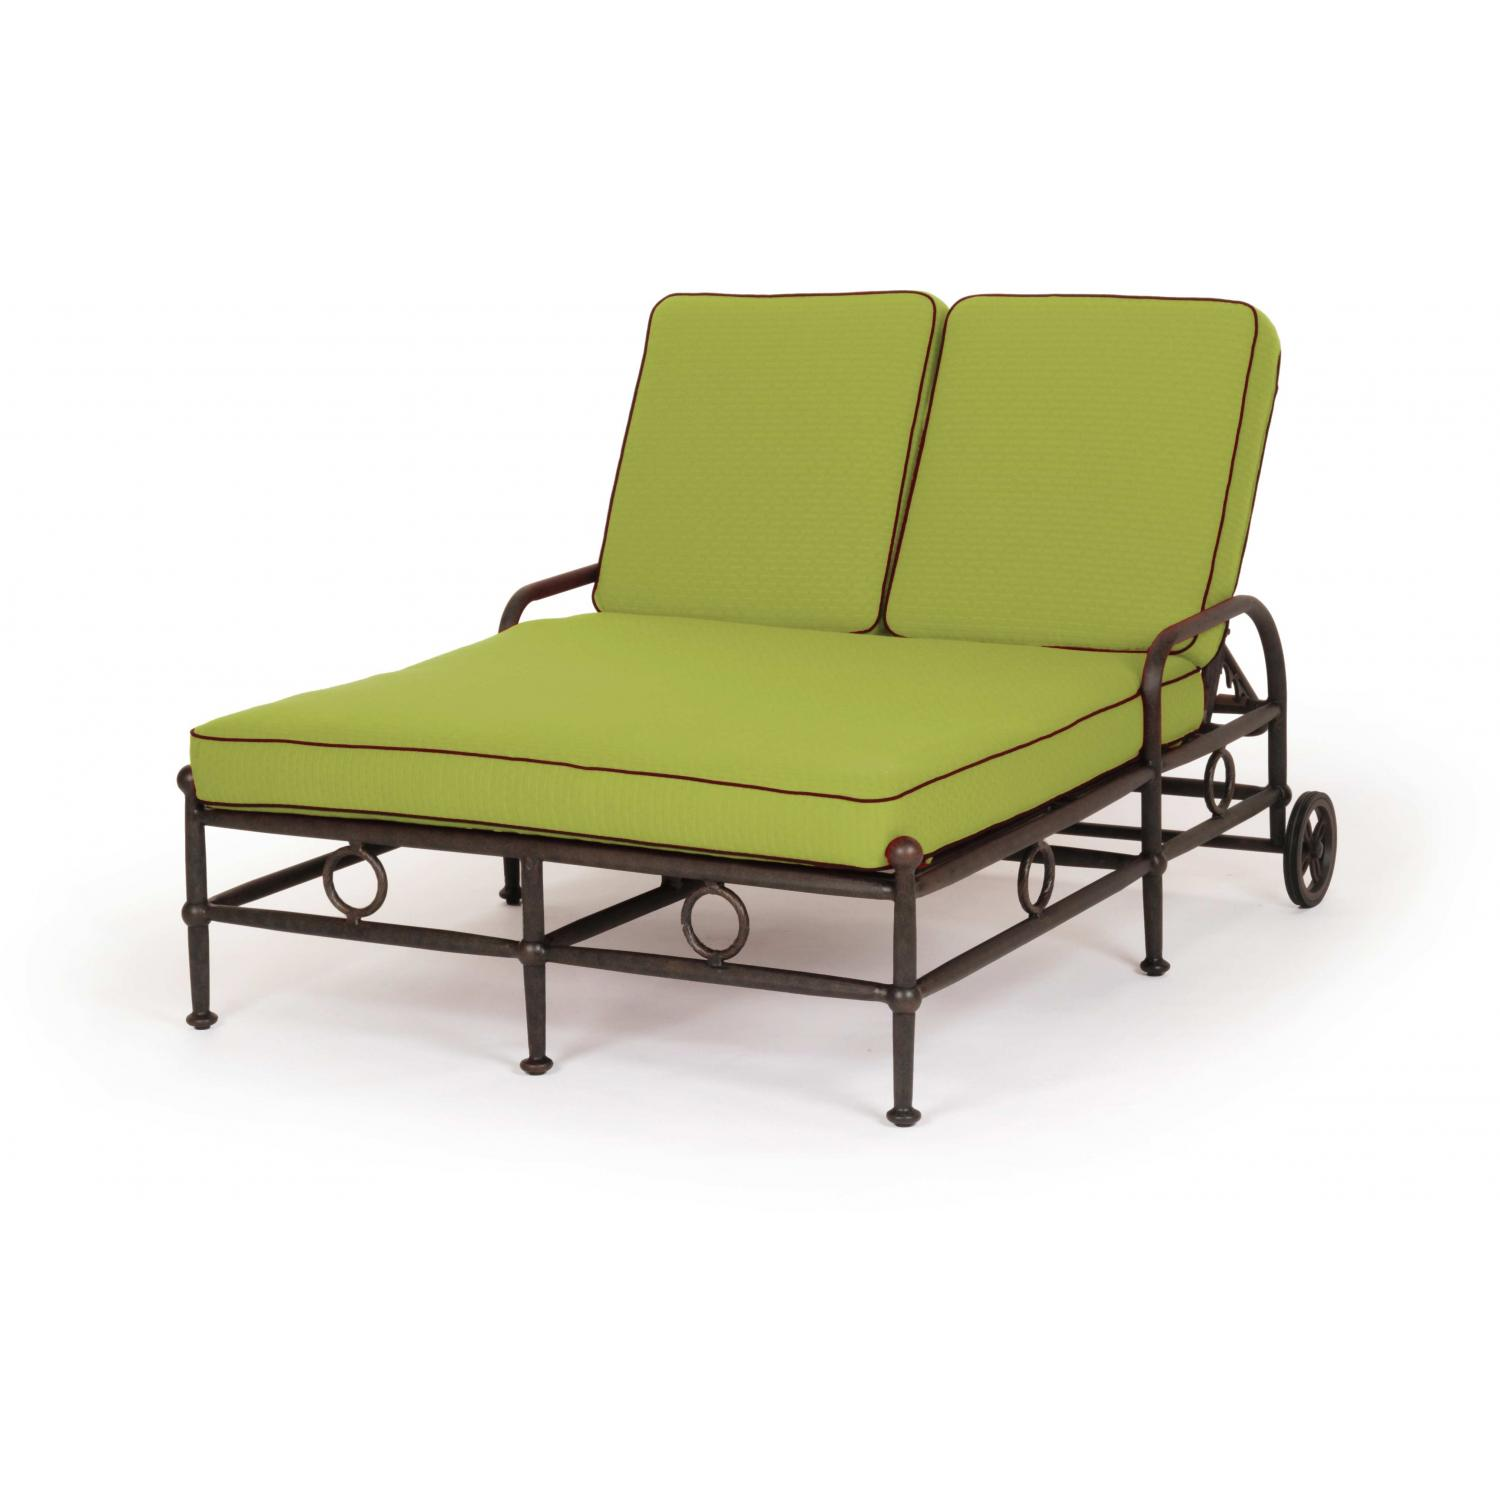 Caluco Origin Aluminum Double Chaise Lounge